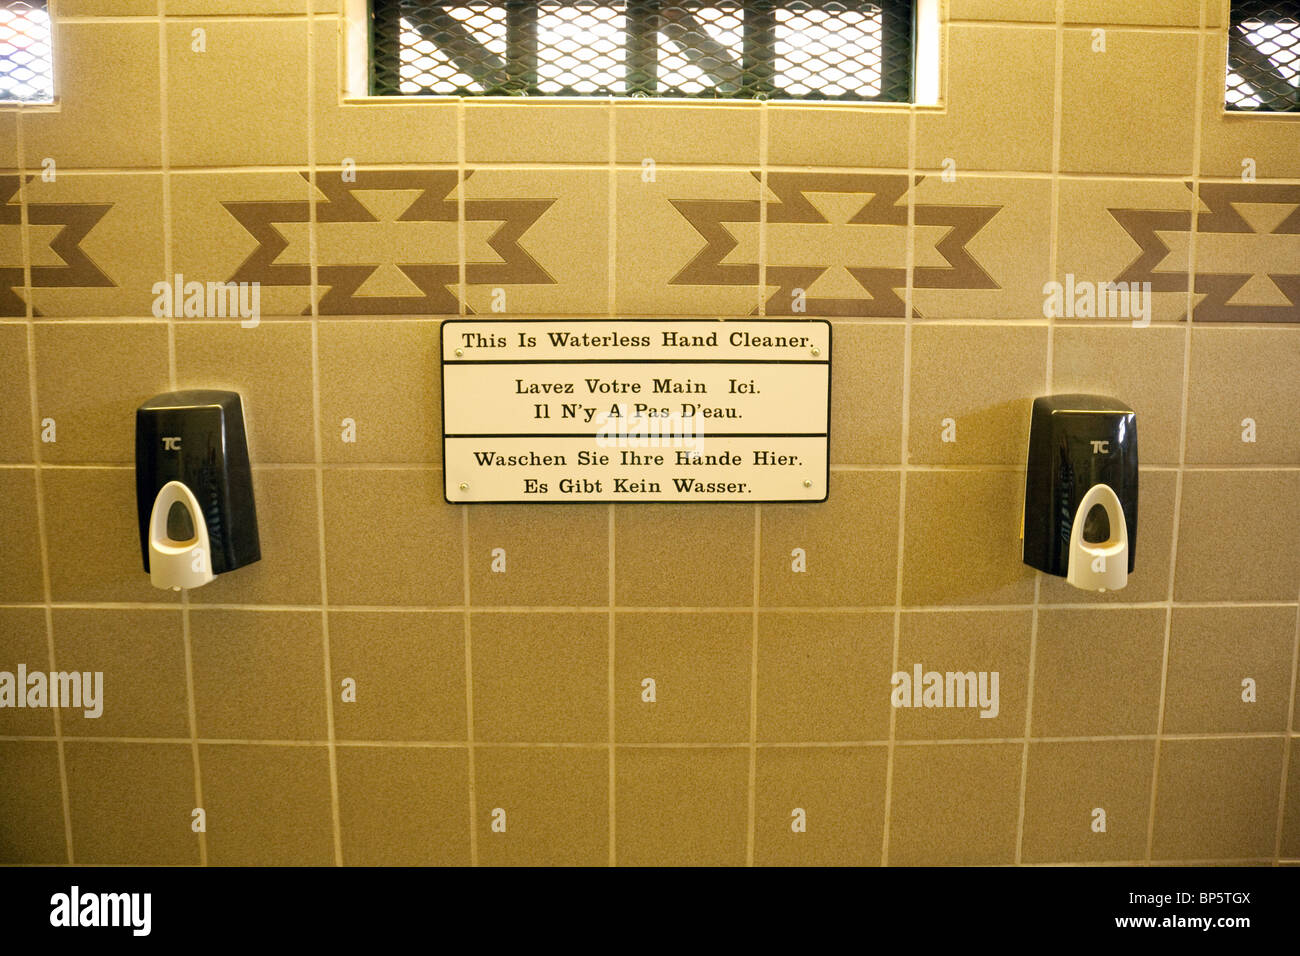 Environmentally friendly waterless hand cleaner in a lavatory in Arizona USA - Stock Image